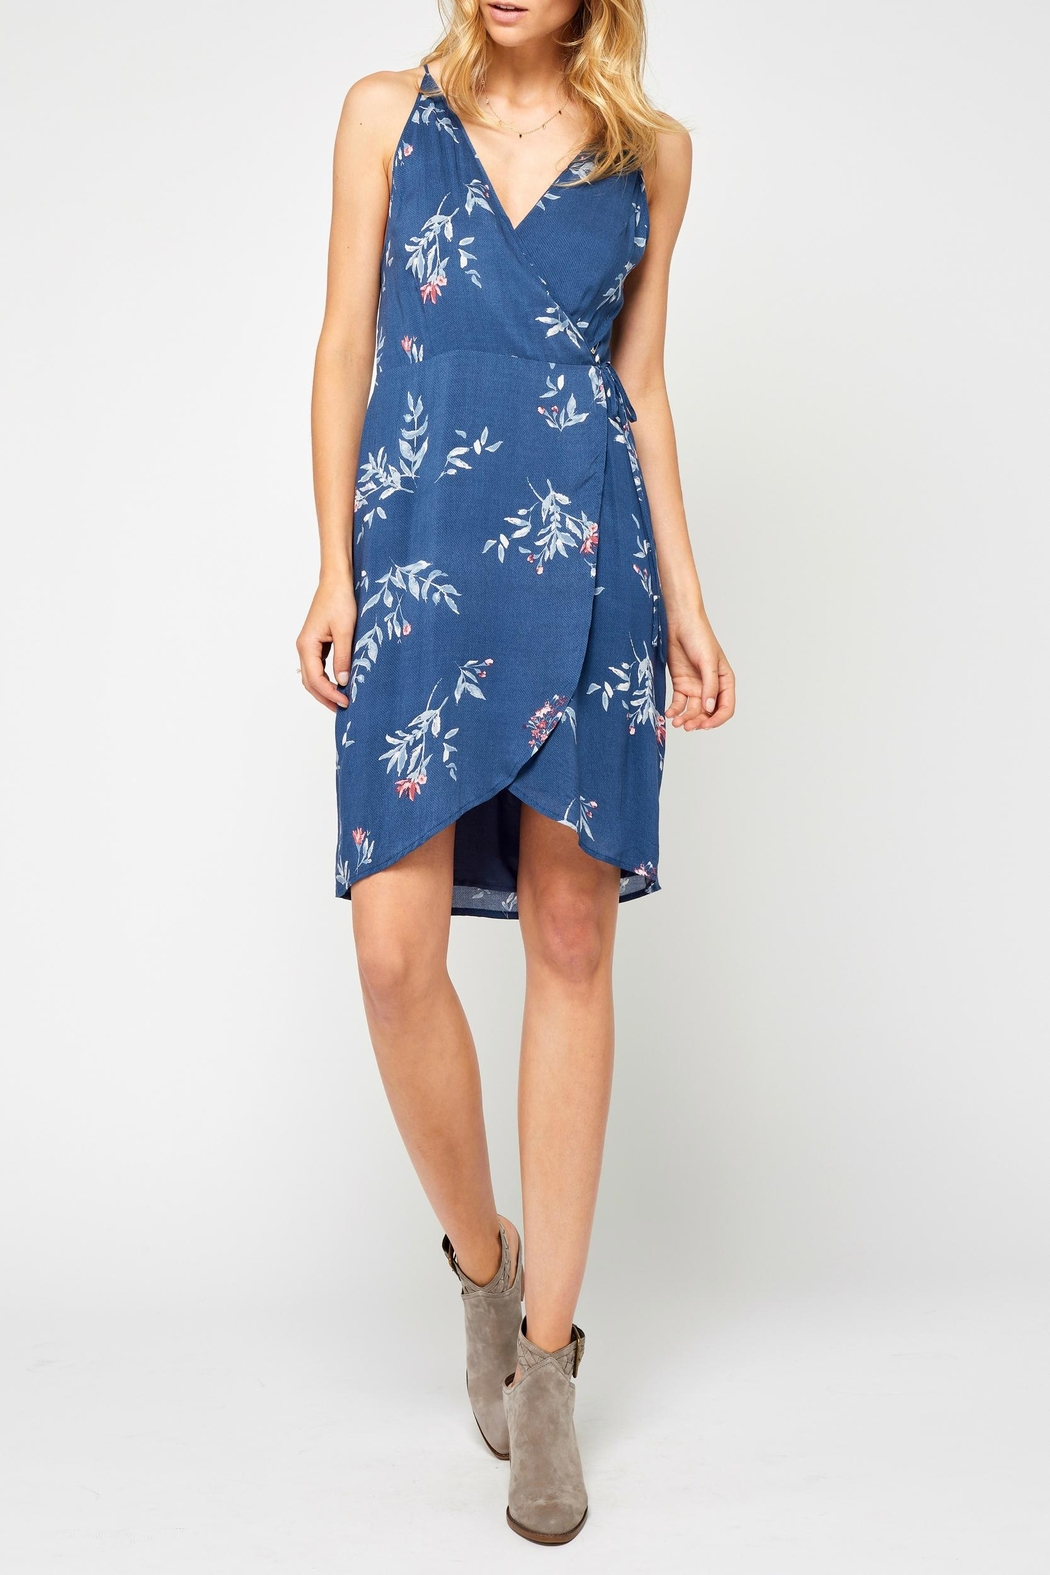 Gentle Fawn Blue Print Dress - Front Cropped Image